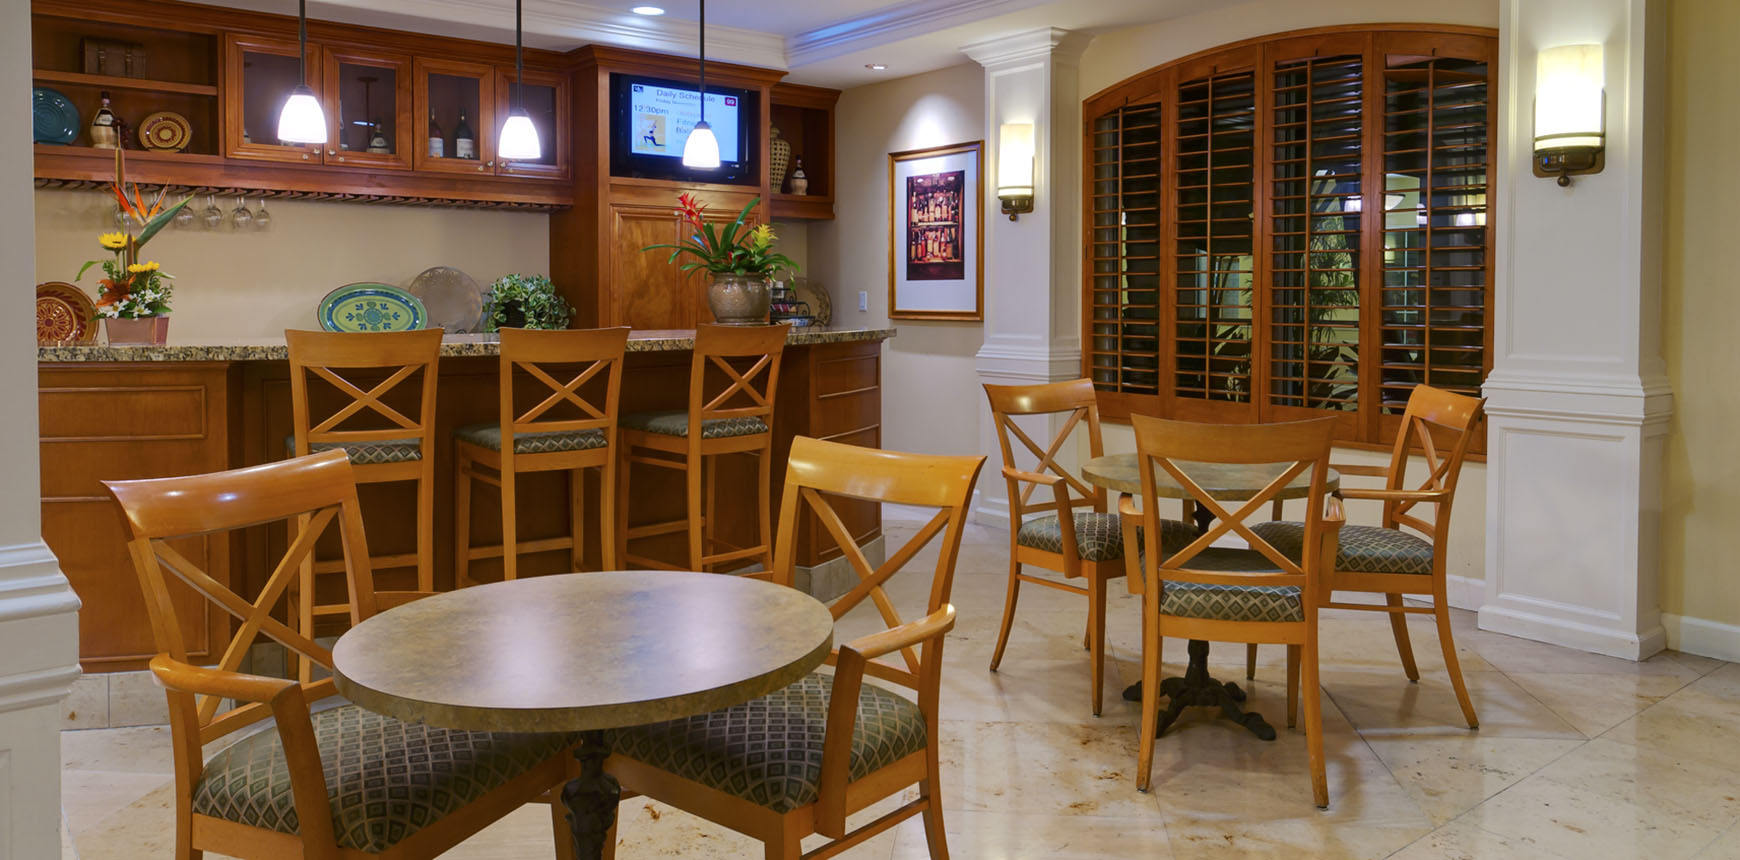 sherman oaks senior singles The village at sherman oaks is a modern retirement community full of eclectic charm that offers its residents an endless array of activities and amenities.